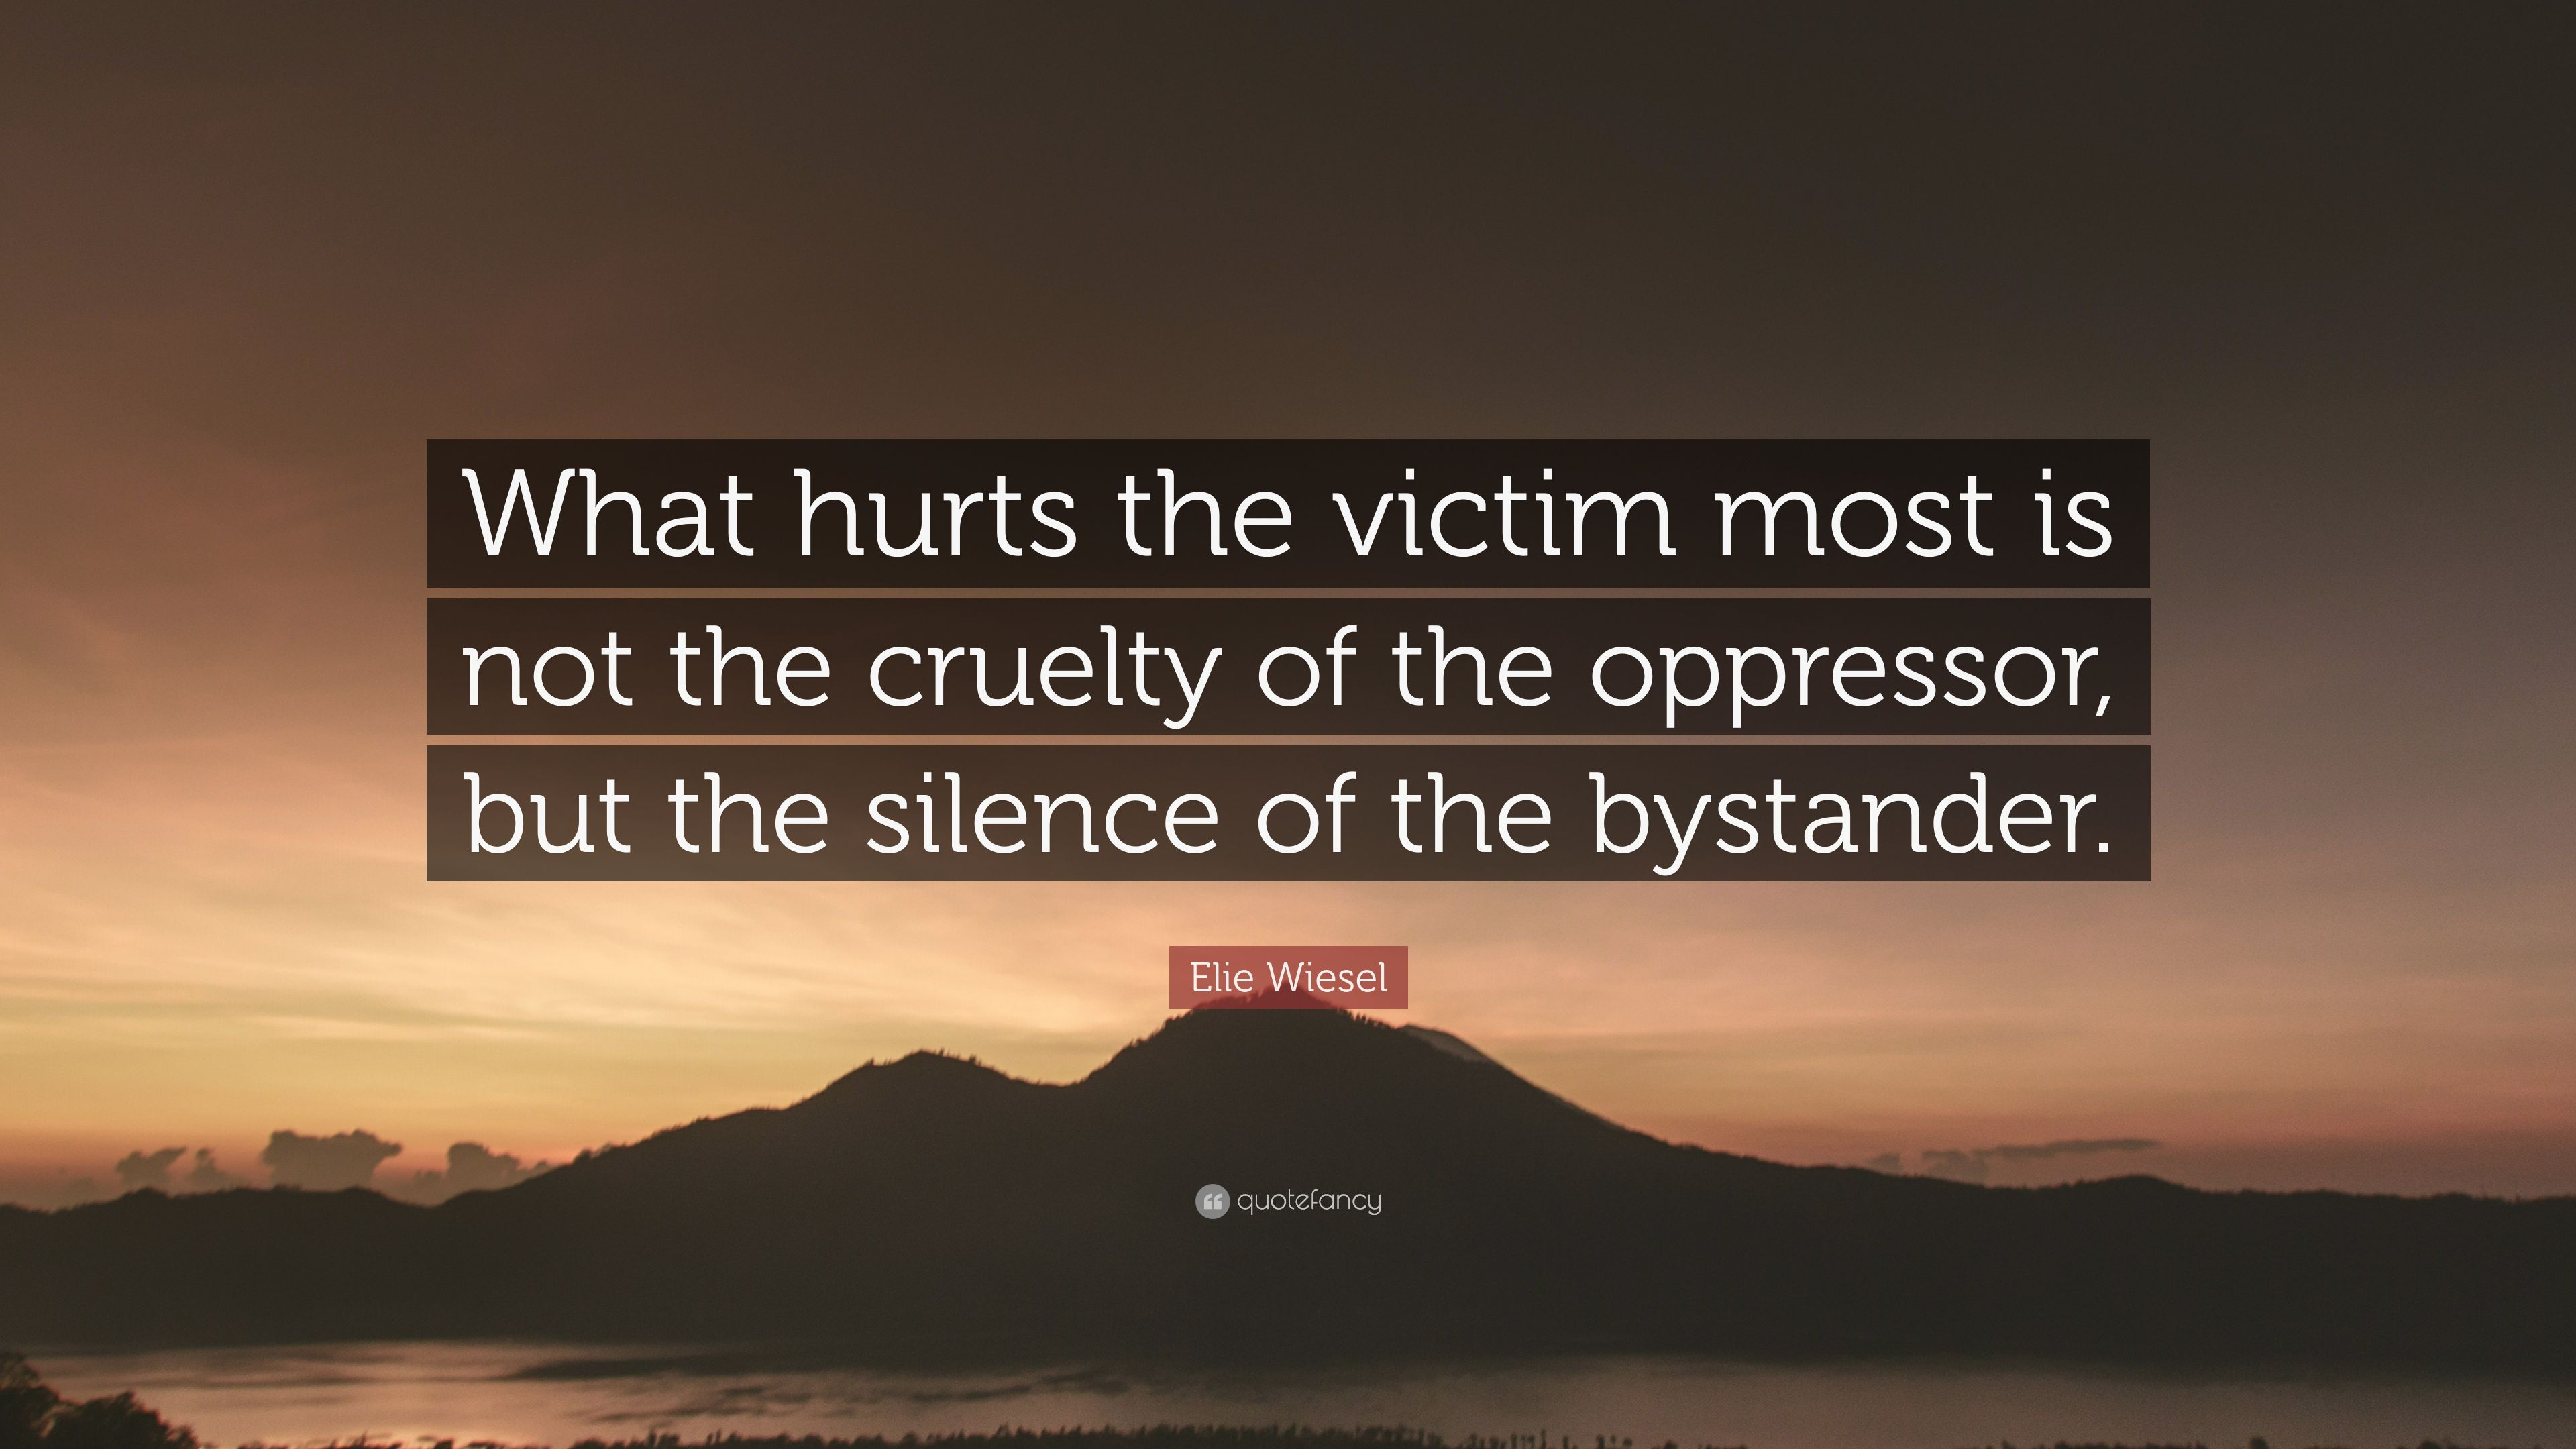 Elie Wiesel Quote What Hurts The Victim Most Is Not The Cruelty Of The Oppressor But The